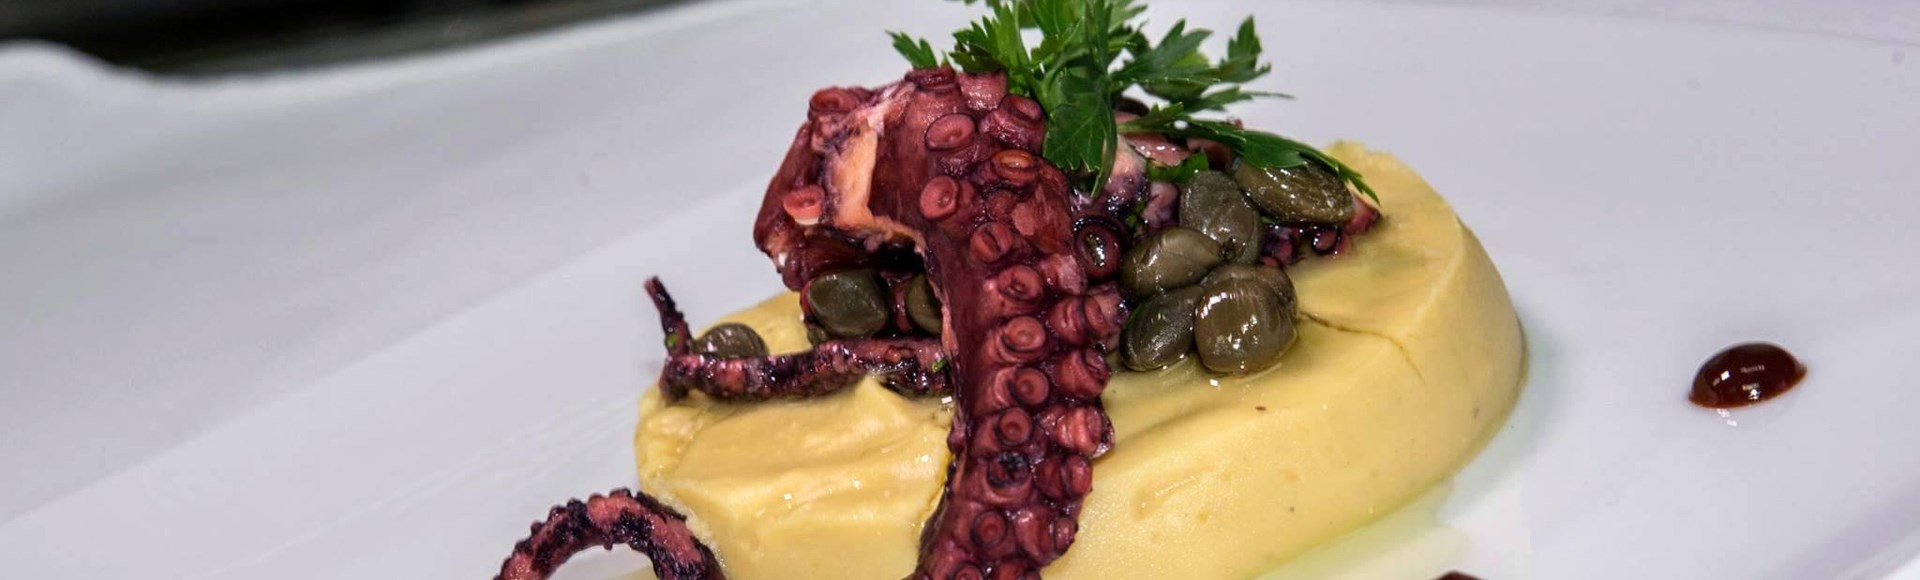 grilled-octopus-on-fava-bed-traditional-broad-peas-spread-served-with-caper-and-drops-of-balsamic-vinegar - Private Chef Service For Your Villa Holidays In Santorini, Cyclades, Greece